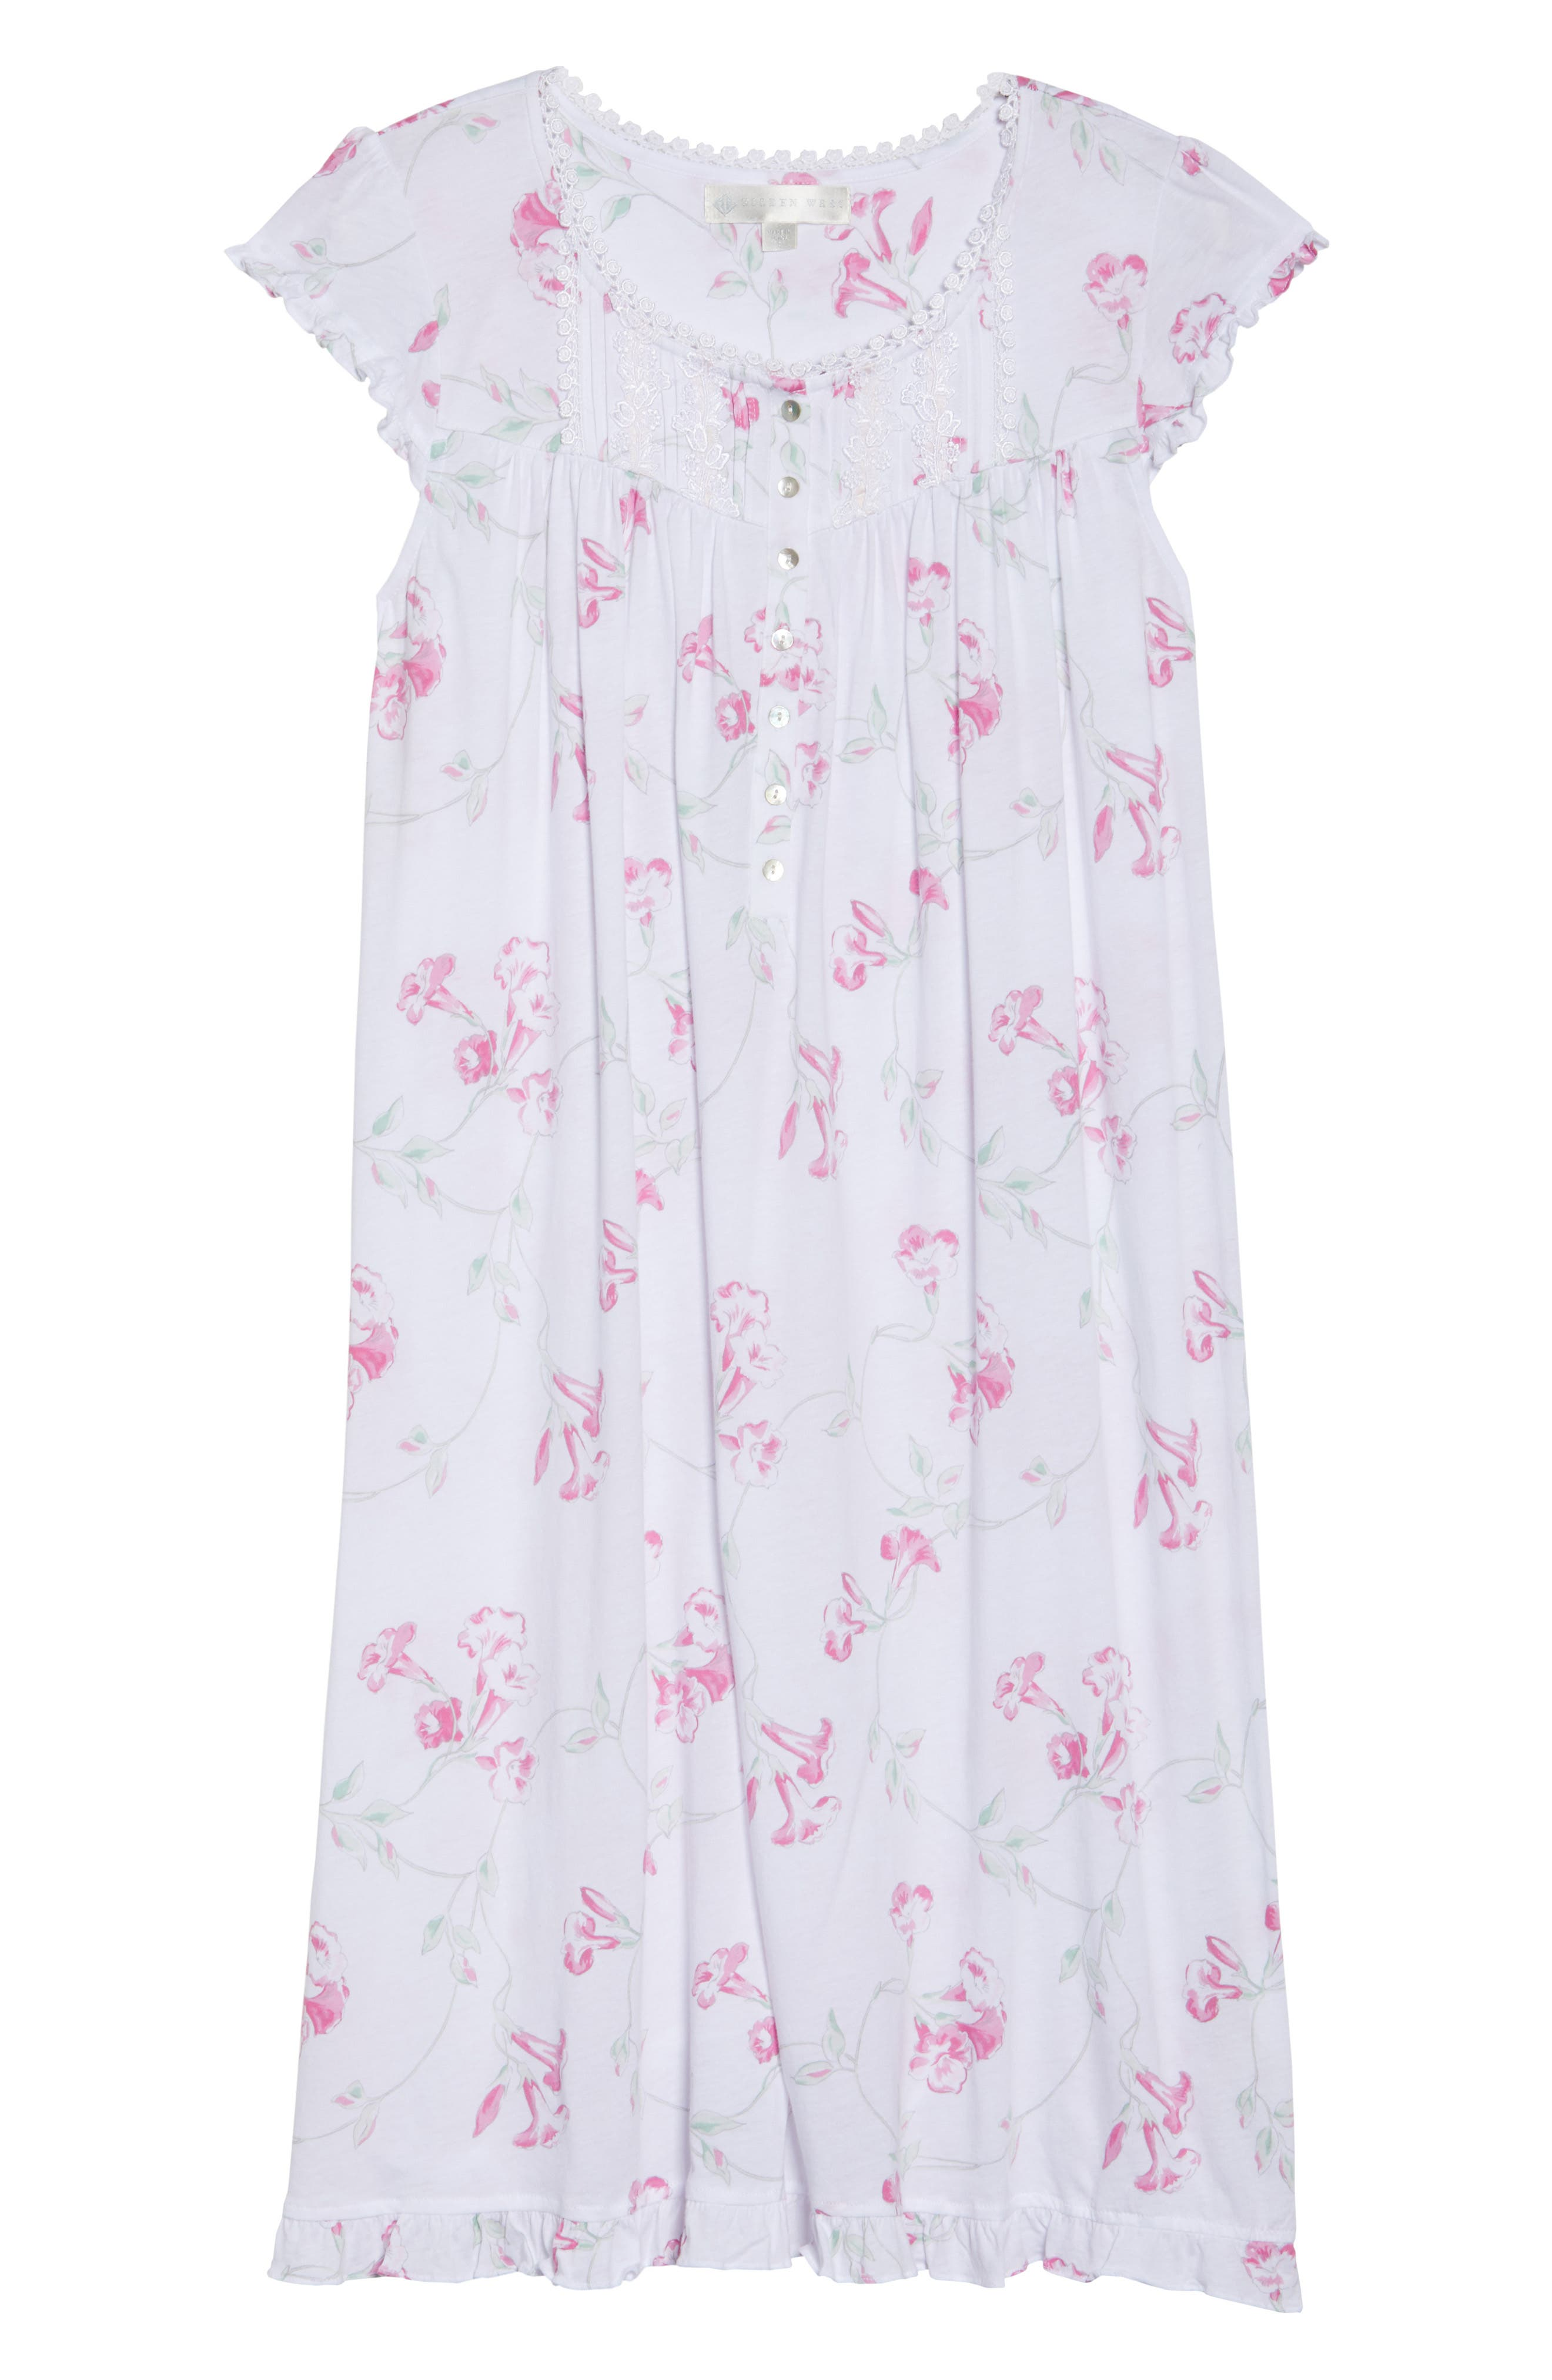 Floral Print Nightgown,                             Alternate thumbnail 4, color,                             White Floral Scroll